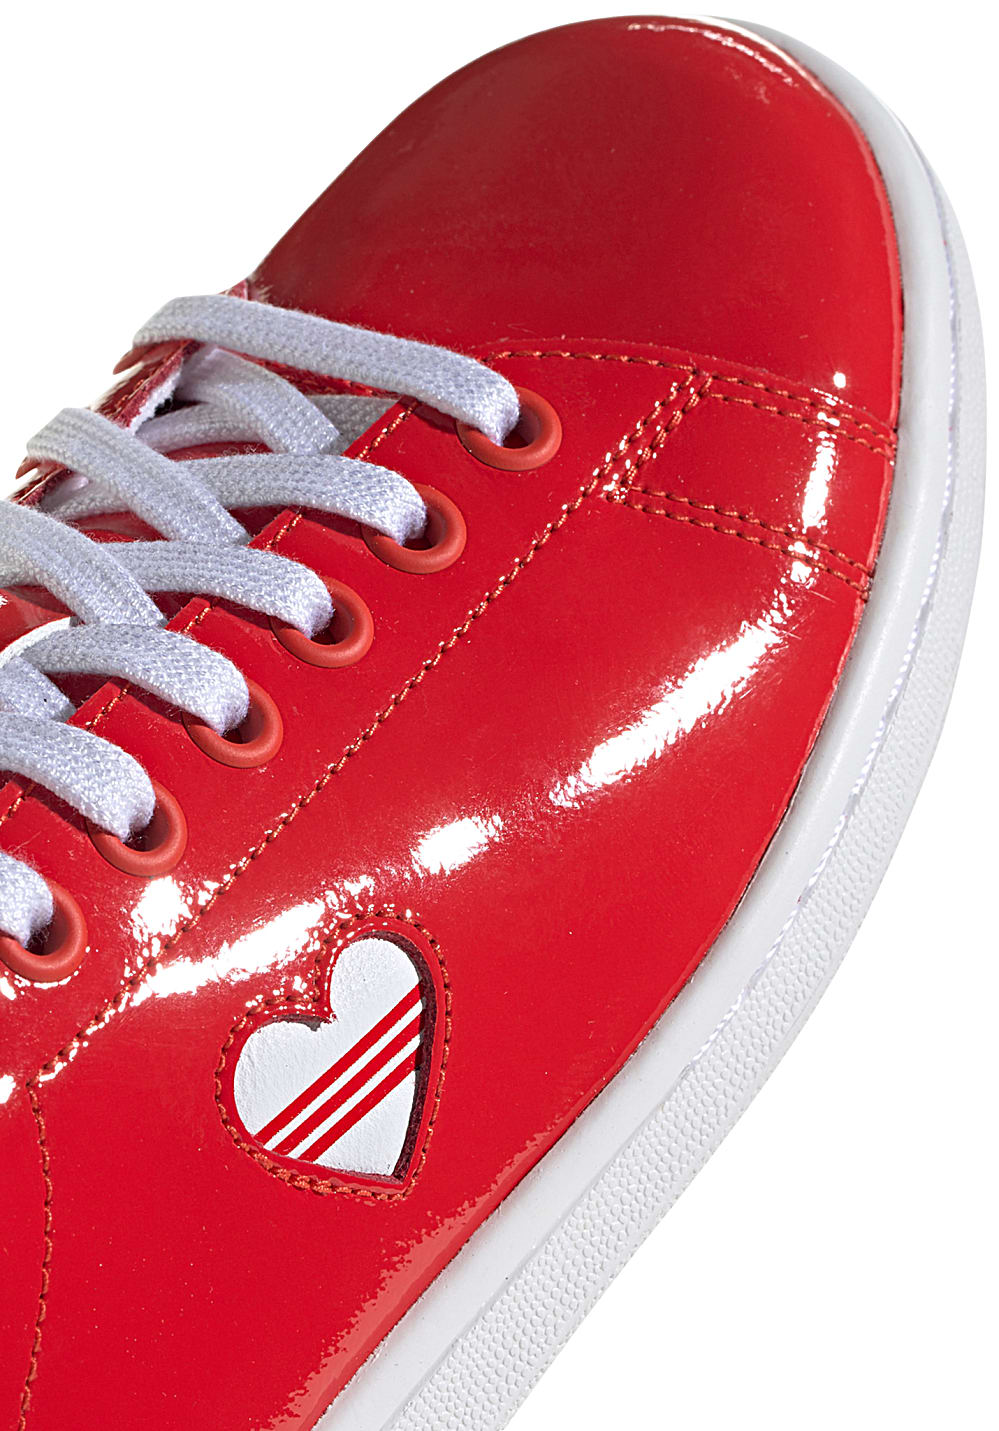 lowest price 8bc40 29dc8 ADIDAS ORIGINALS Stan Smith - Sneakers for Women - Red